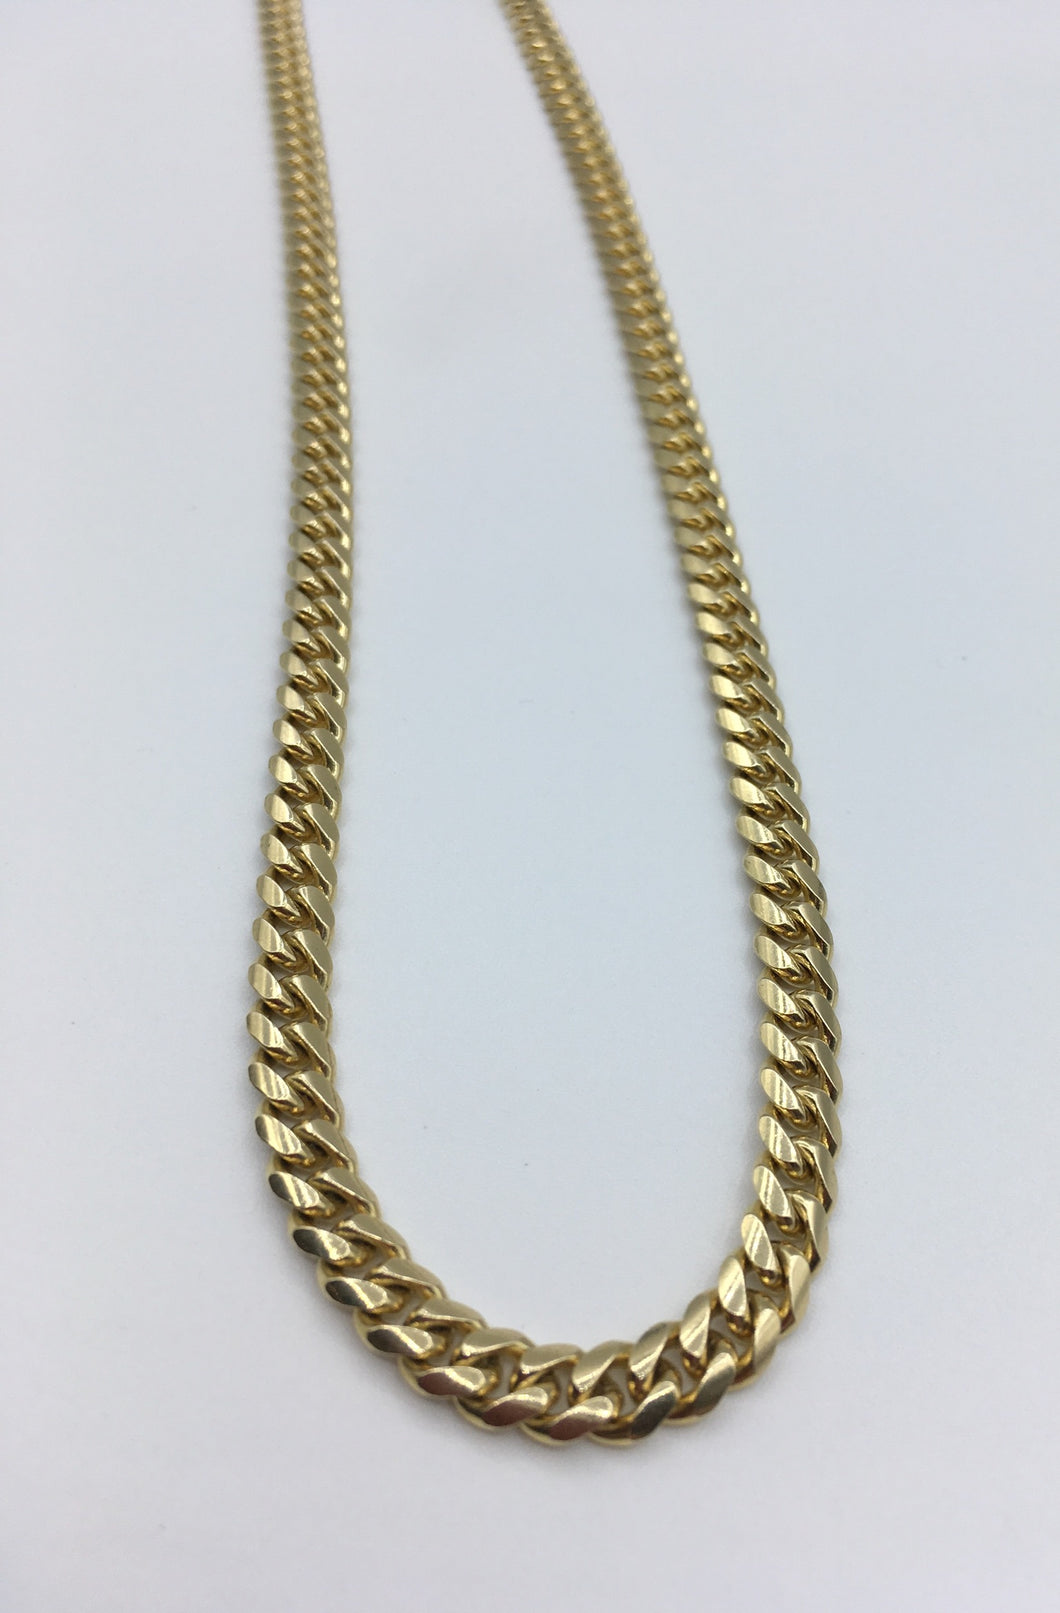 Gold curb link chain